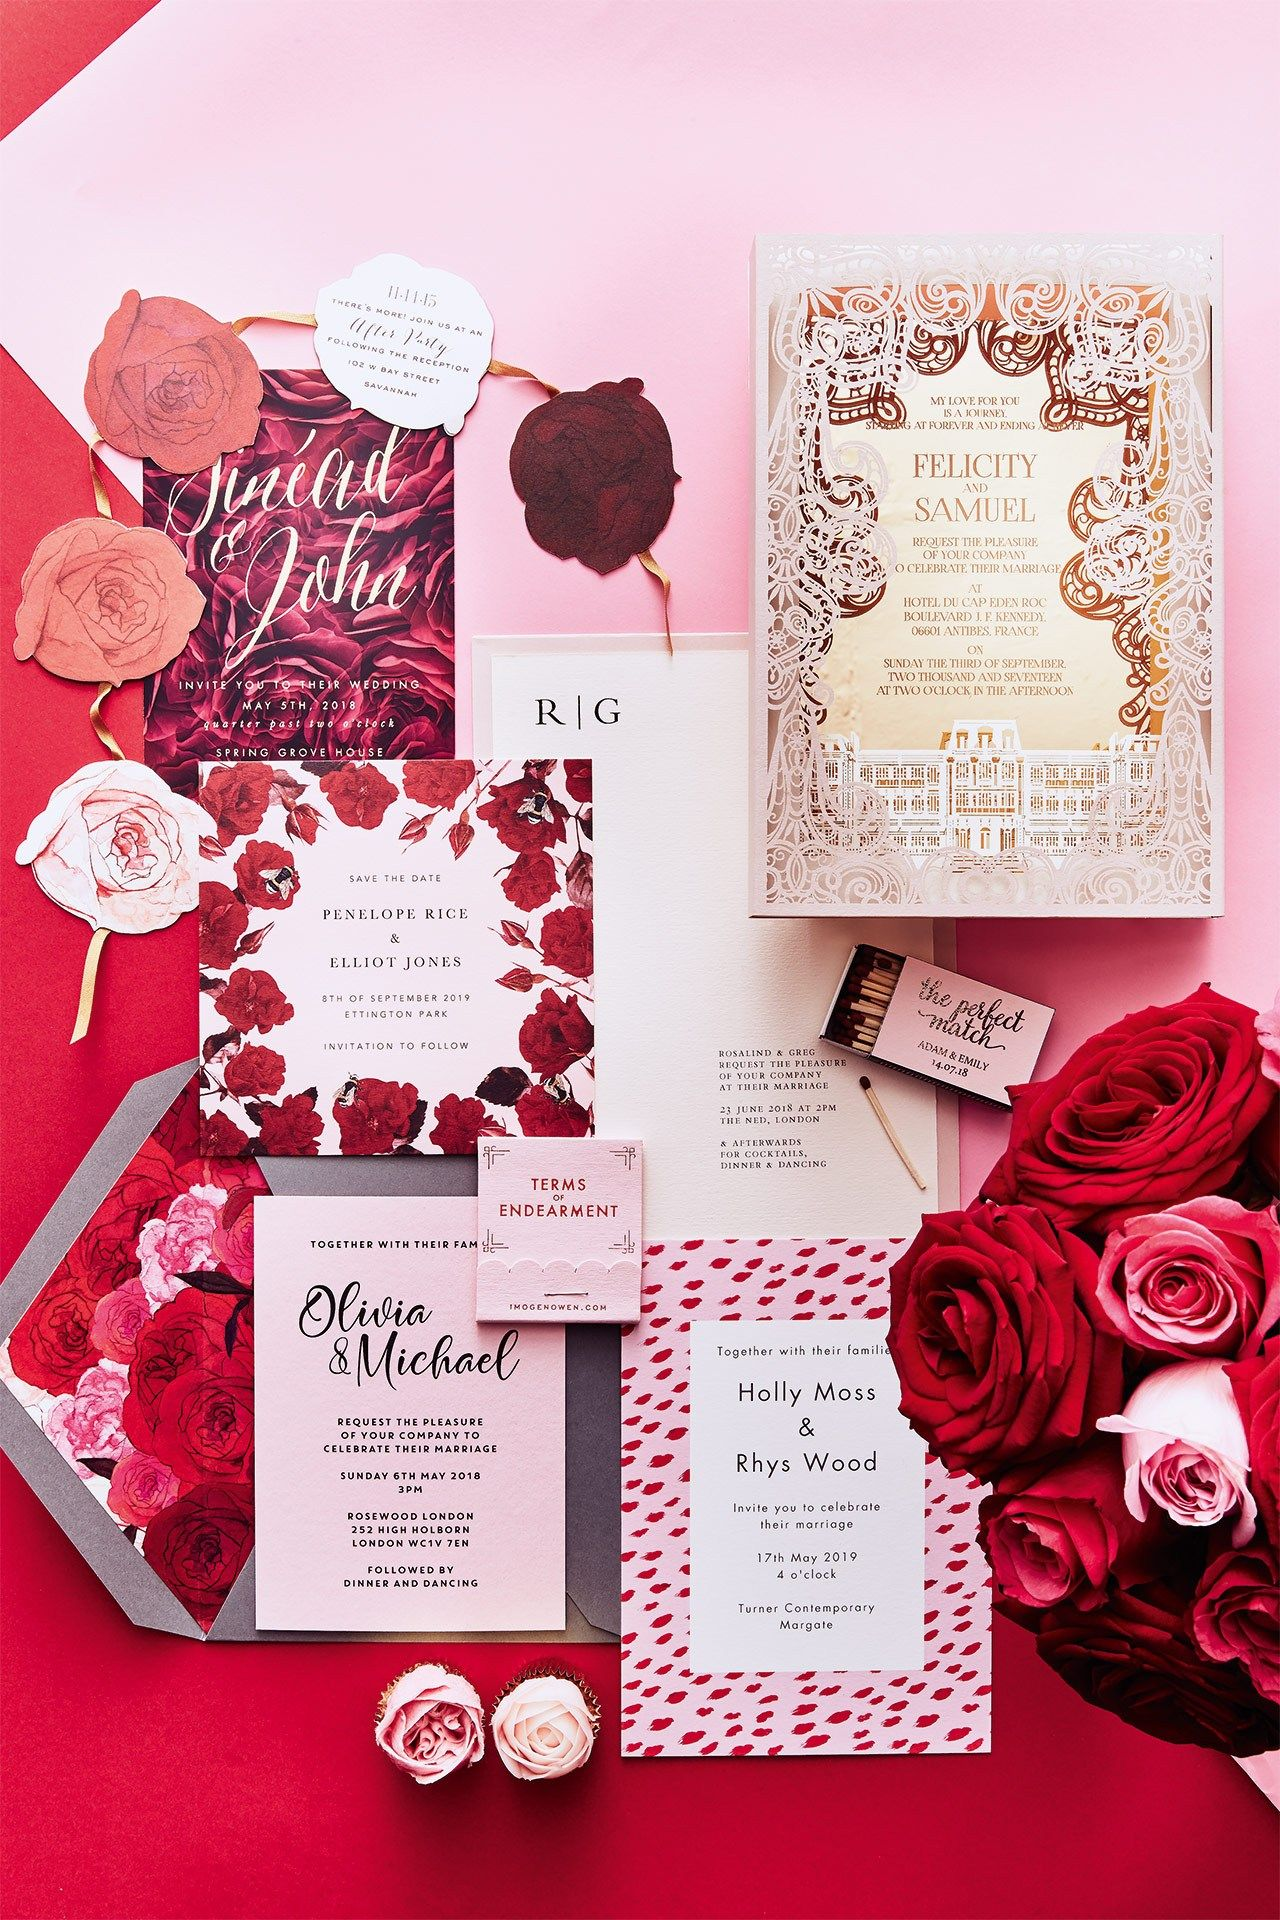 7 Steps To Follow For Your Wedding Invitation Wording | Wedding ...